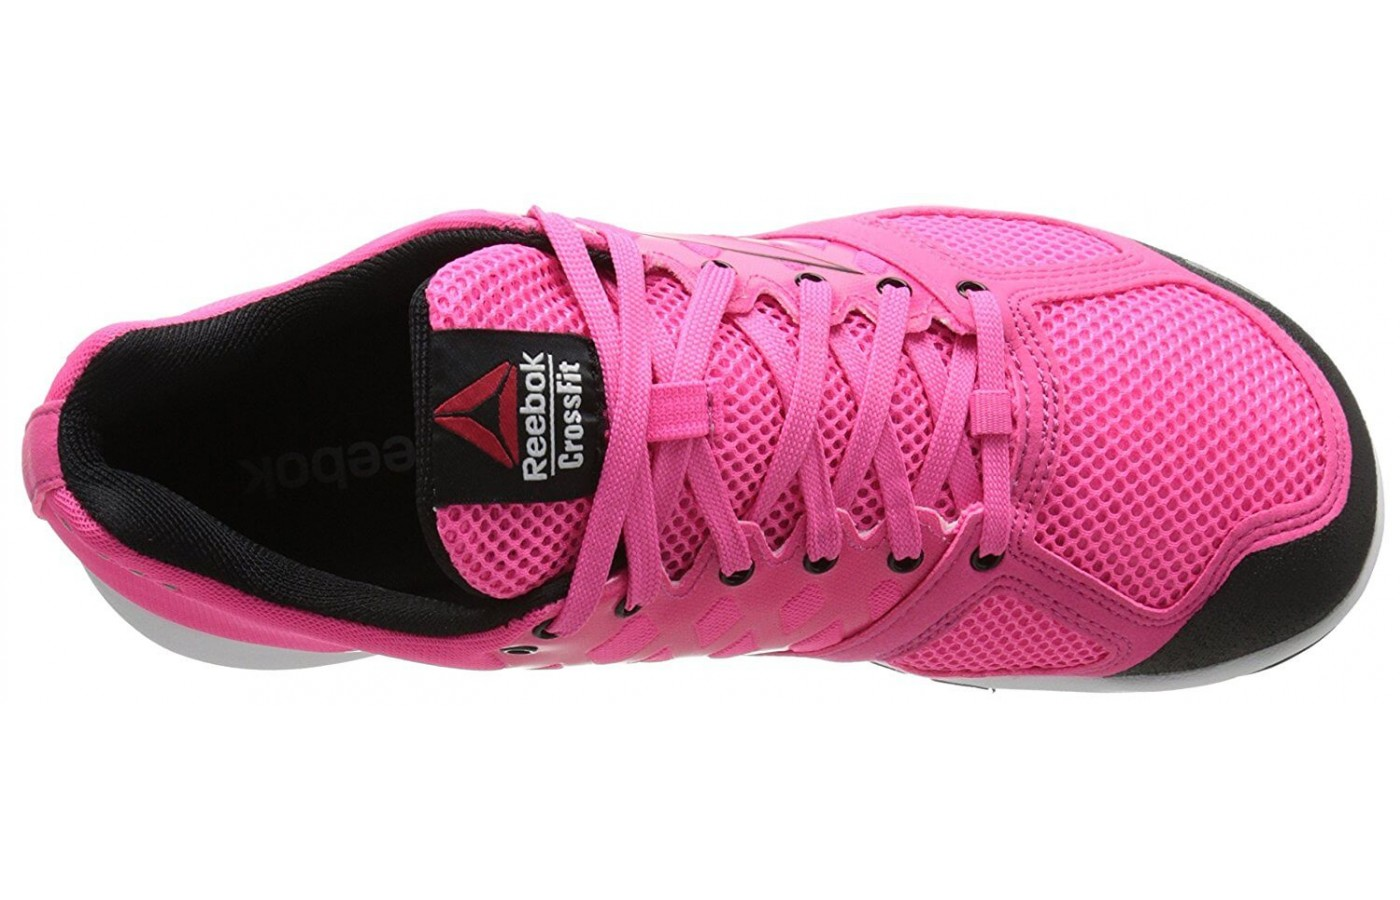 The Reebok CrossFit Nano 2.0 features EVA midsole cushioning